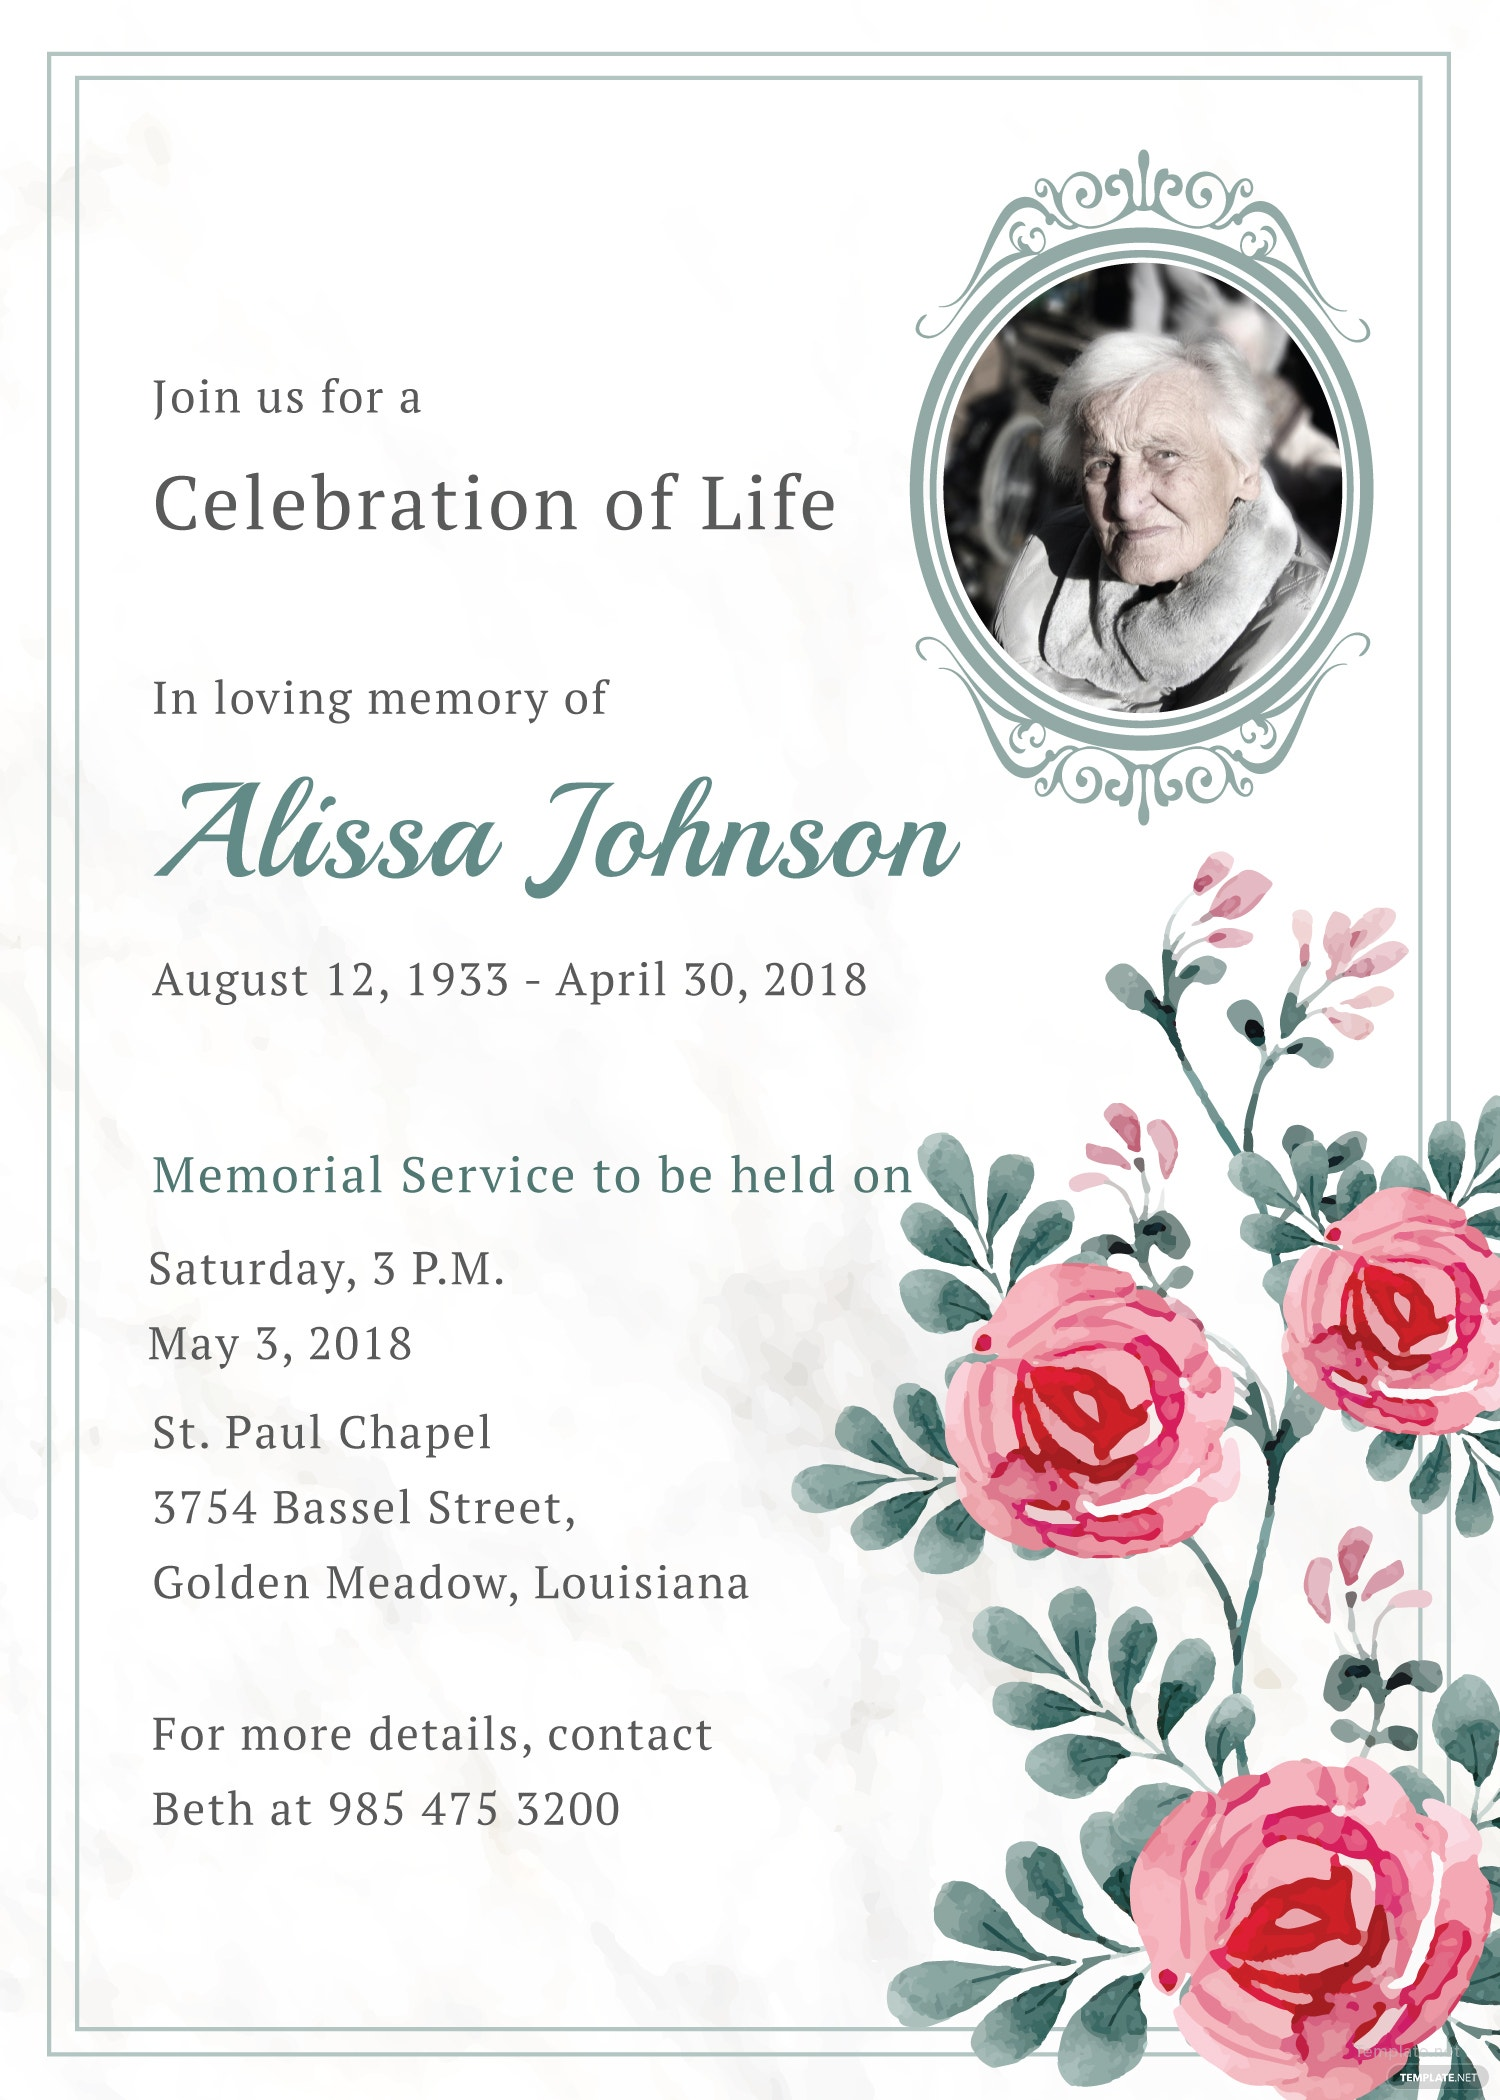 memorial service invitation template in adobe illustrator